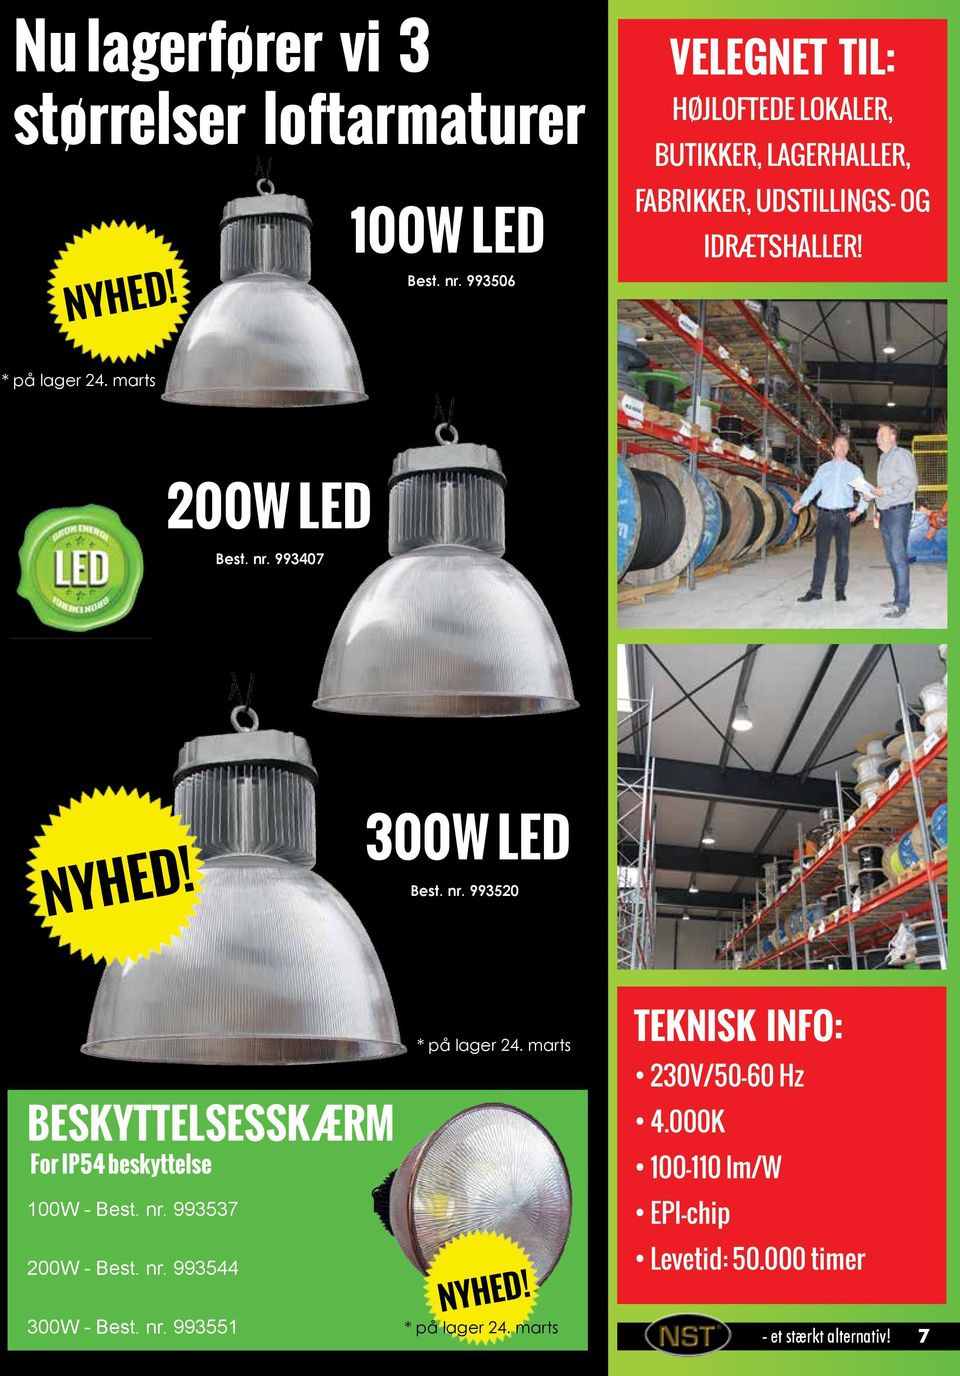 marts 200W LED Best. nr. 993407 NYHED! 300W LED Best. nr. 993520 BESKYTTELSESSKÆRM For IP54 beskyttelse 100W - Best. nr. 993537 200W - Best.